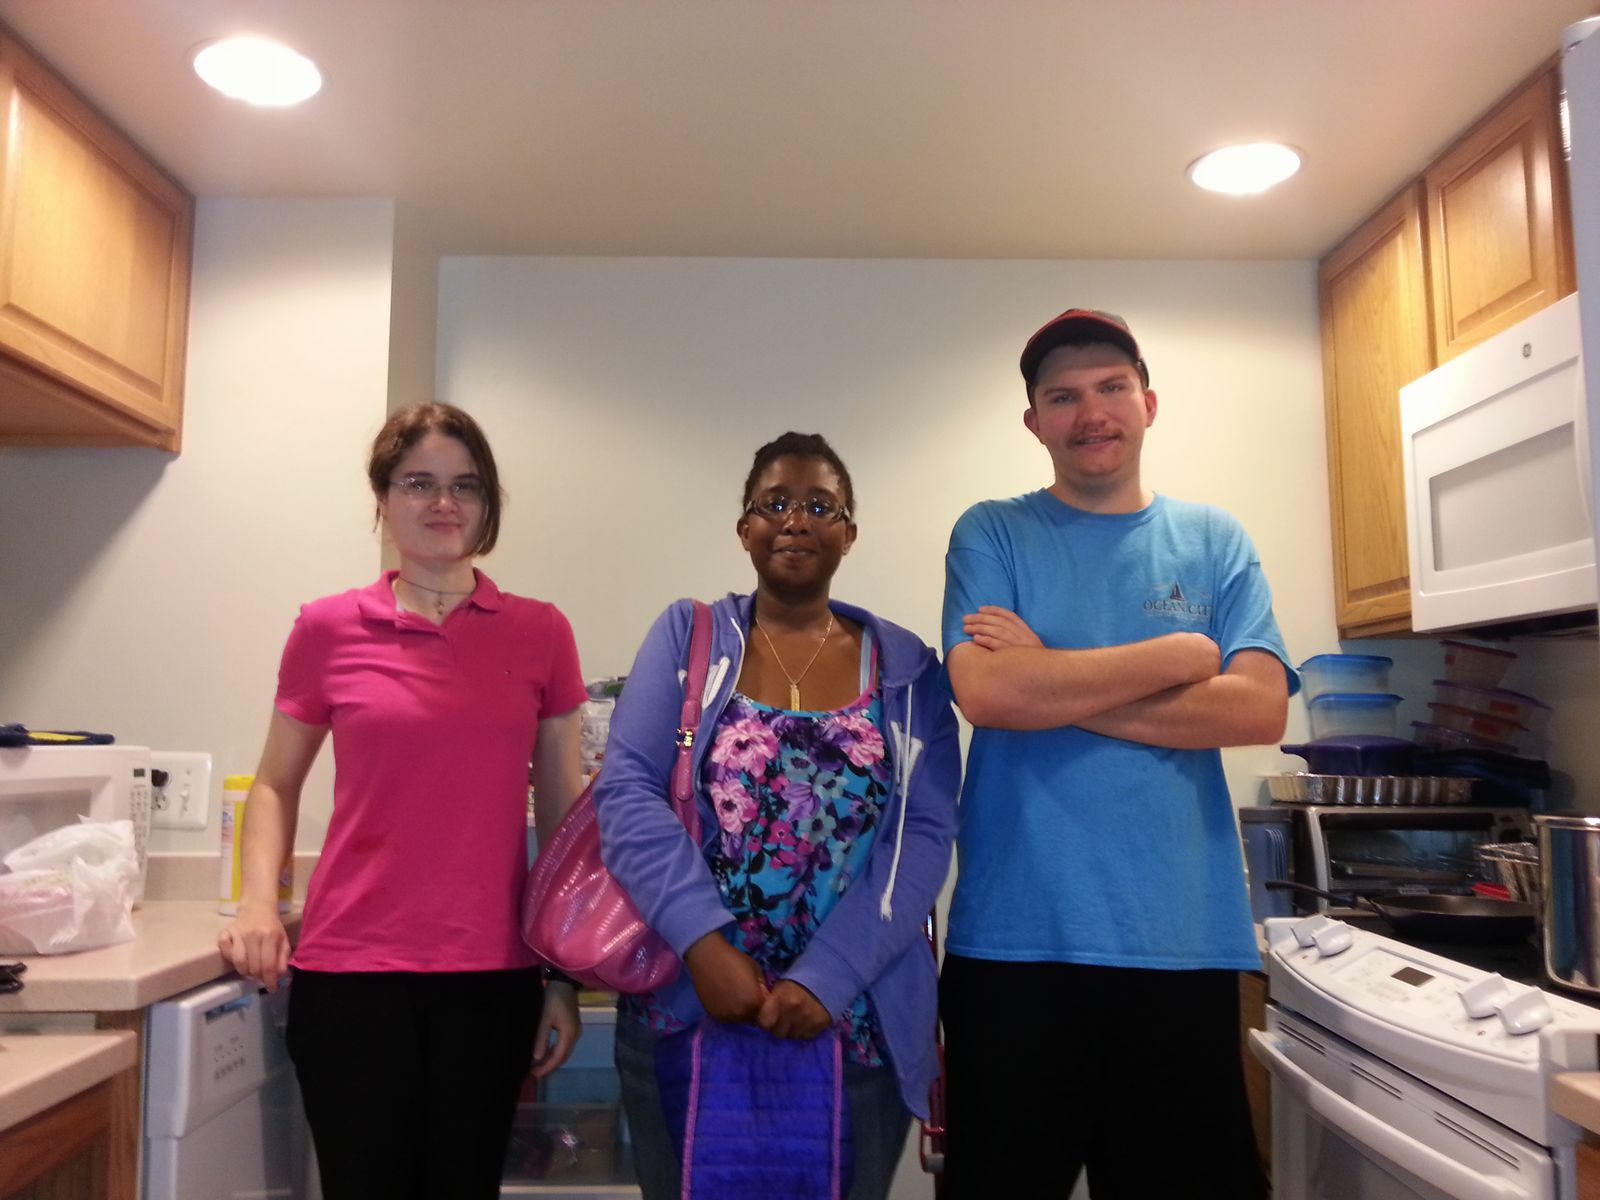 Three youth participants smile standing in the kitchen